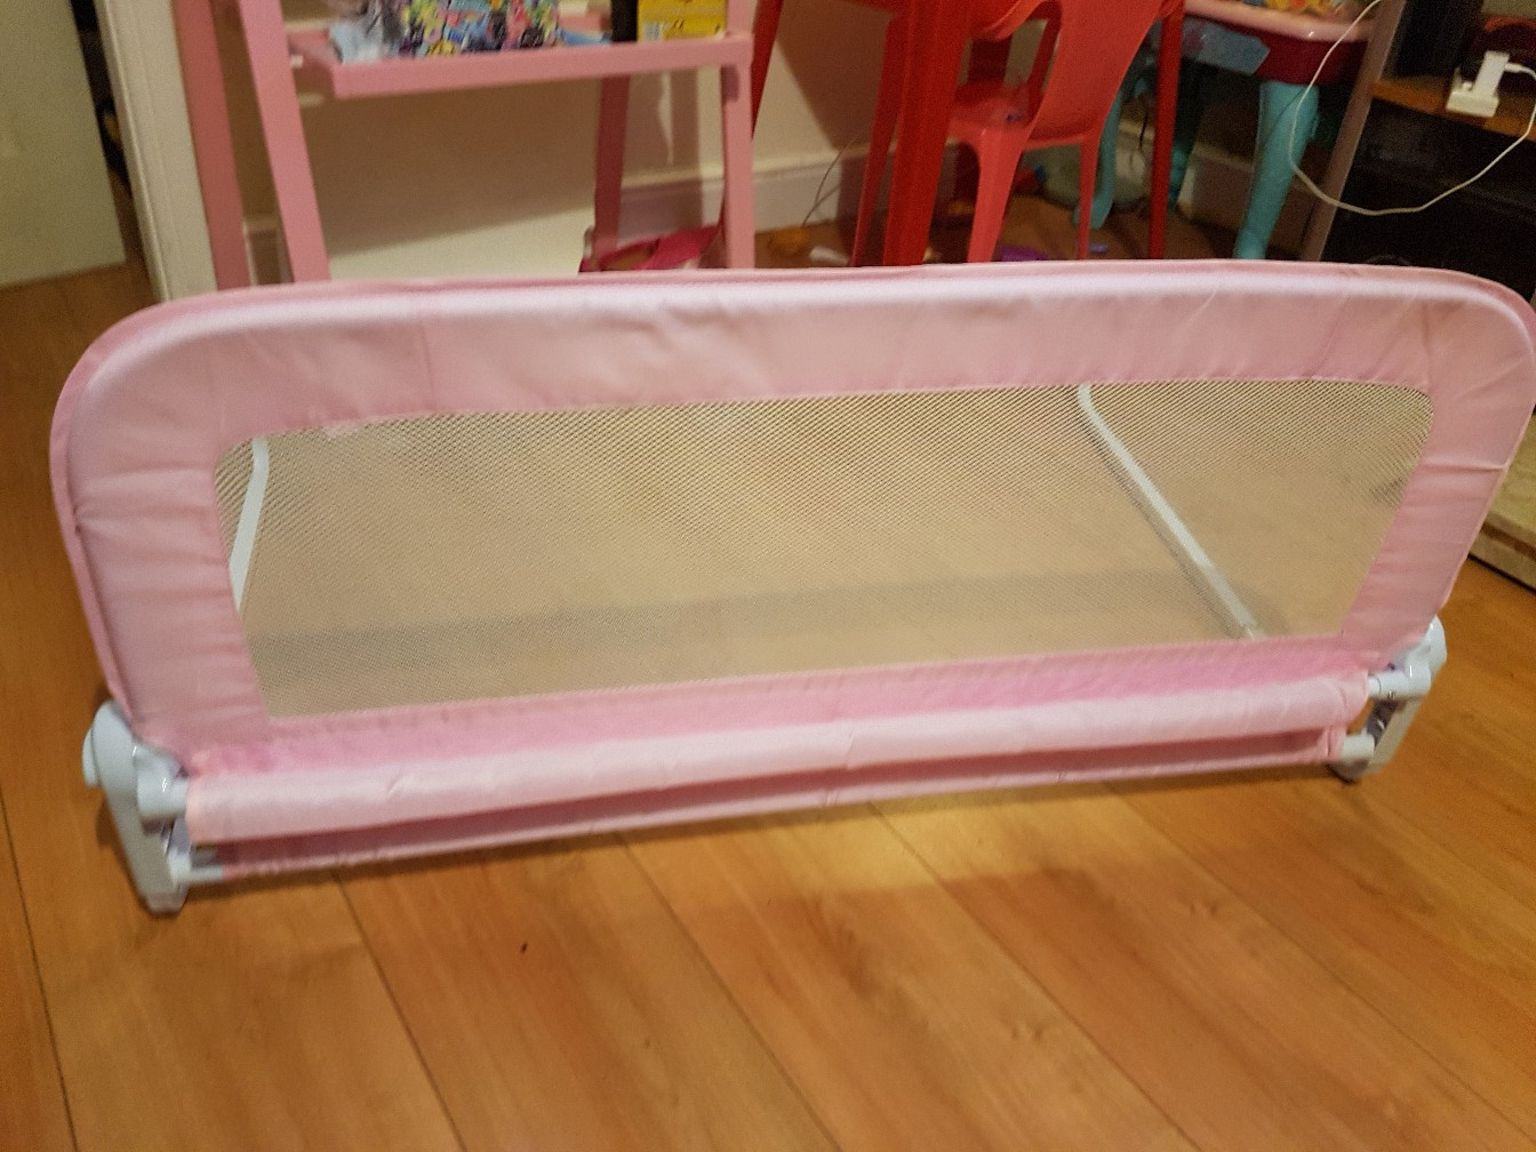 hardwood floor refinishing newark nj of https en shpock com i wpmrqdtezveaj0dv 2018 04 02t195120 throughout pink mothercare bed rail